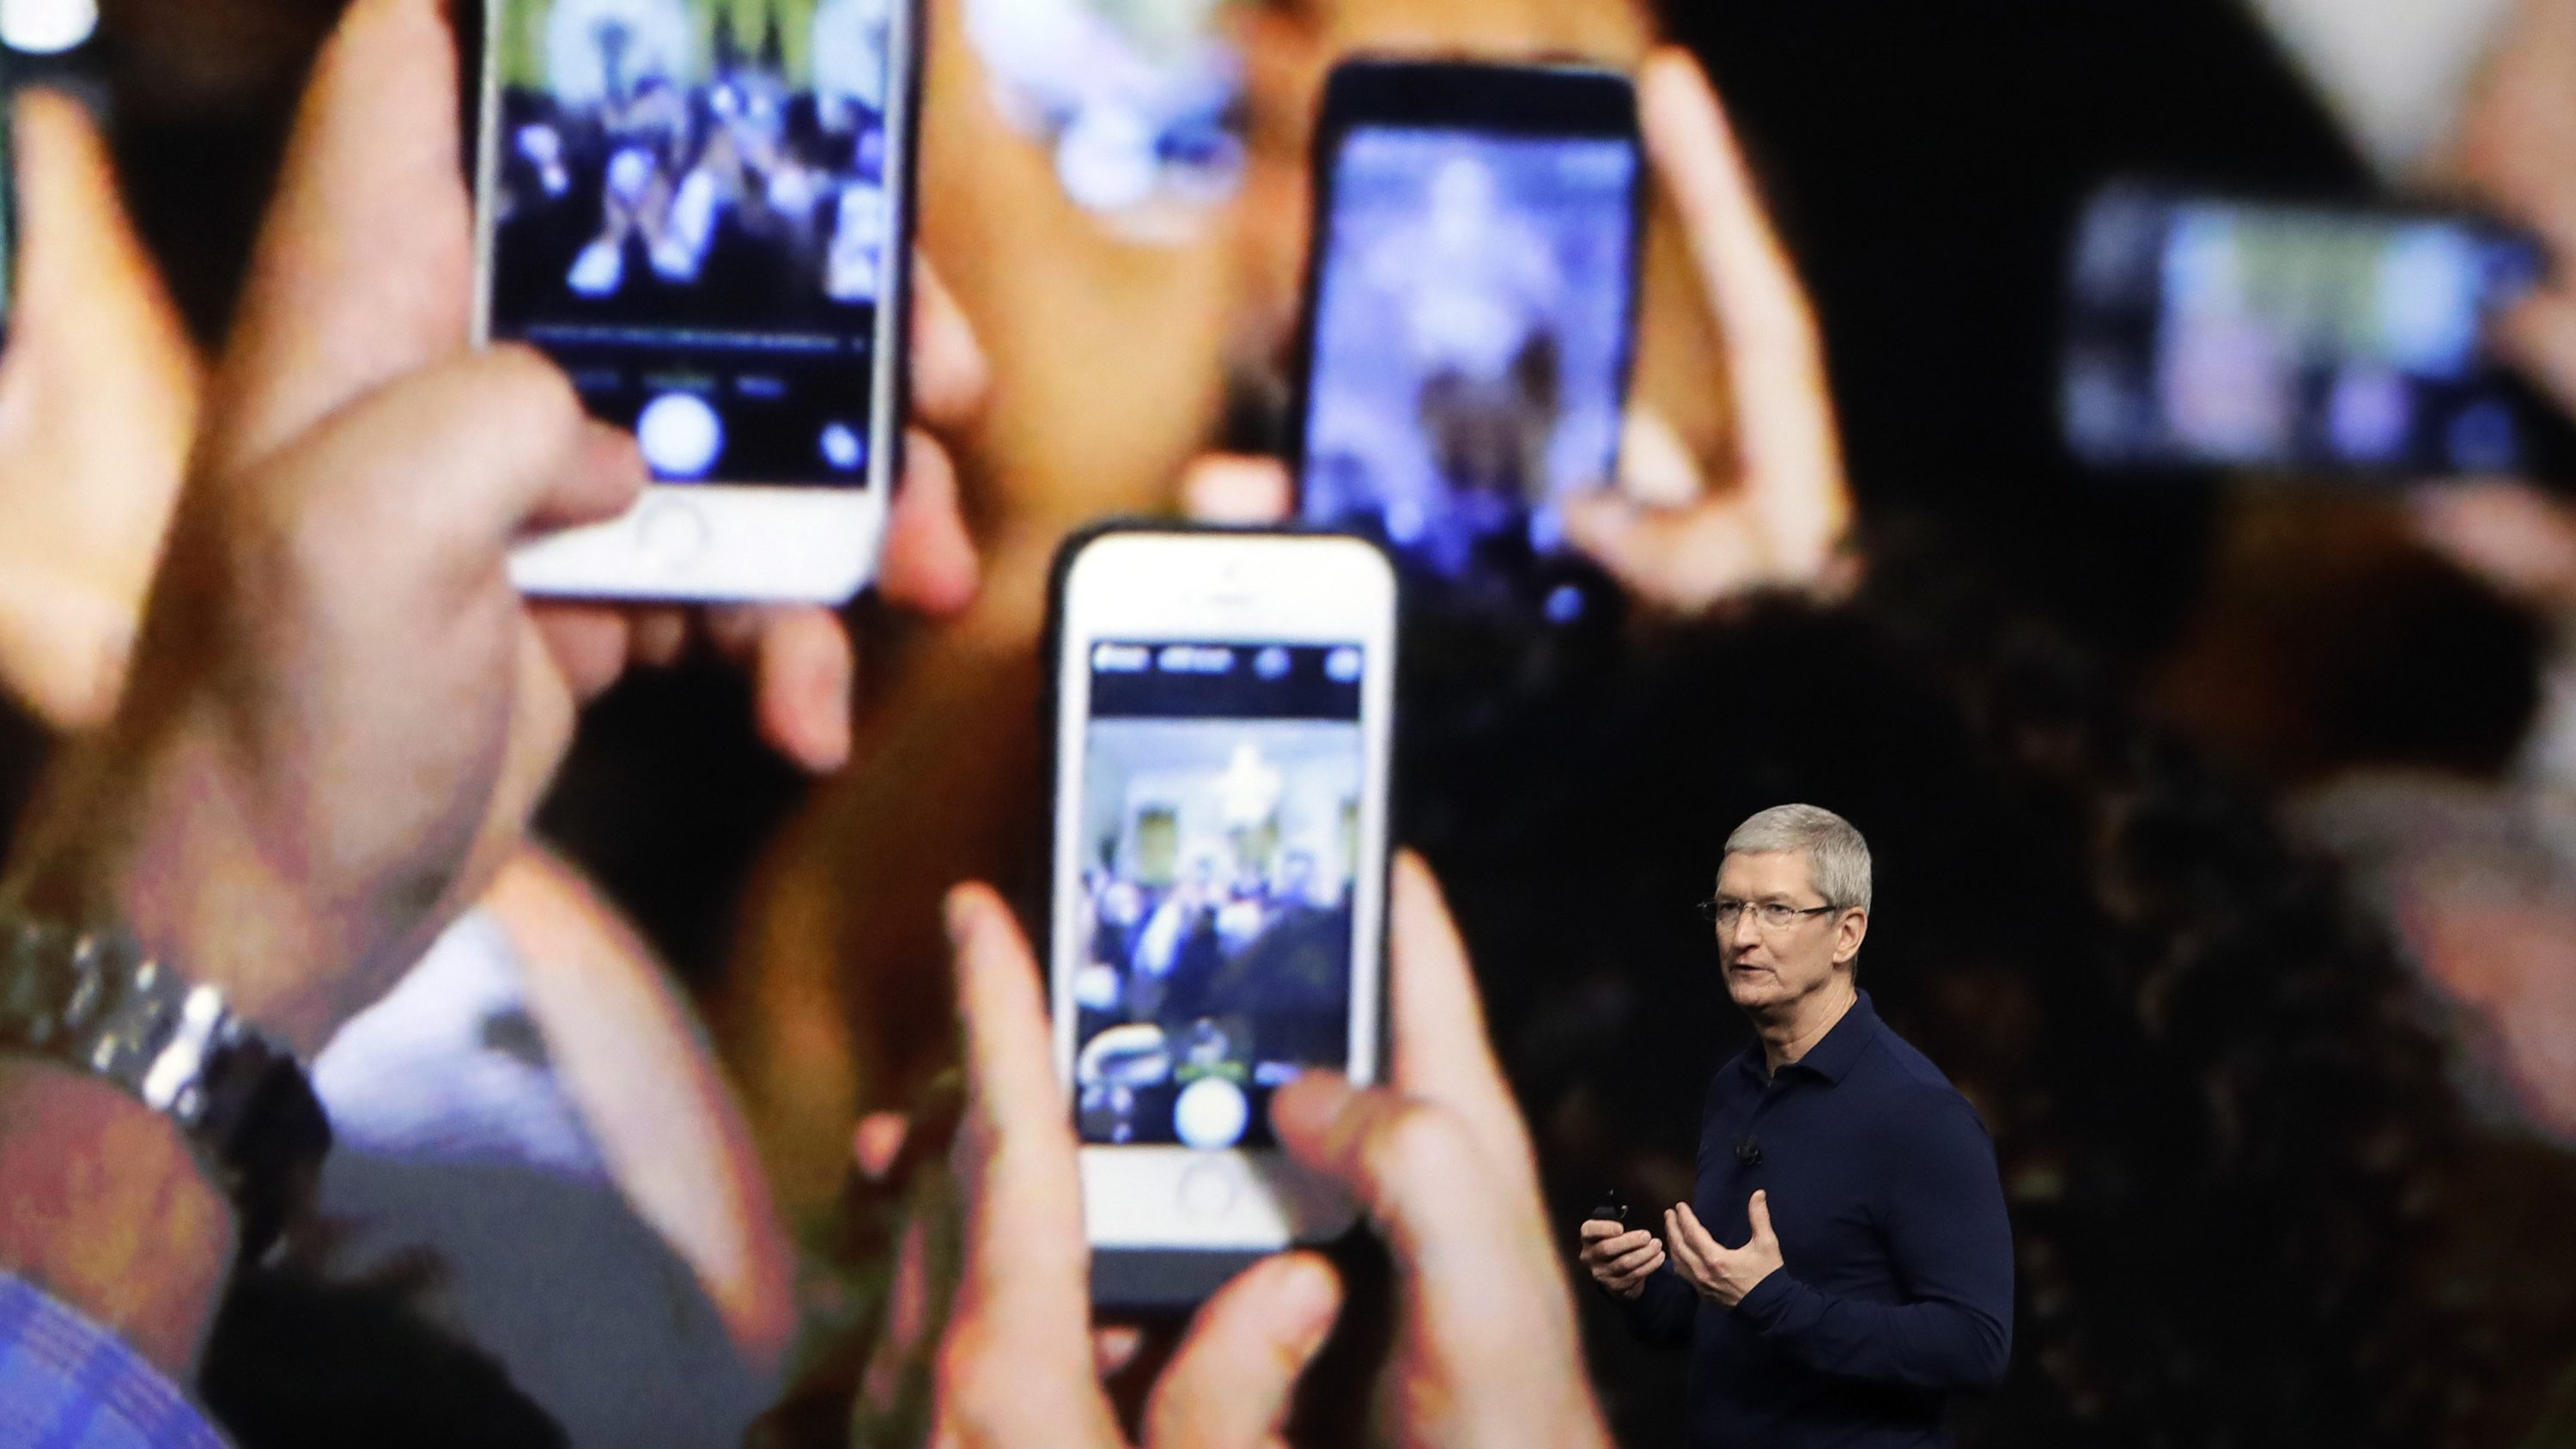 In this Wednesday, Sept. 7, 2016, file photo, Apple CEO Tim Cook announces the new iPhone 7 during an event to announce new products, in San Francisco. Apple reported Tuesday, Oct. 25, 2016, that it sold 45.5 million iPhones in the previous quarter, 5 percent fewer than it sold a year earlier. But the giant tech company's rosy forecast for the holidays was better than what Wall Street had been expecting.